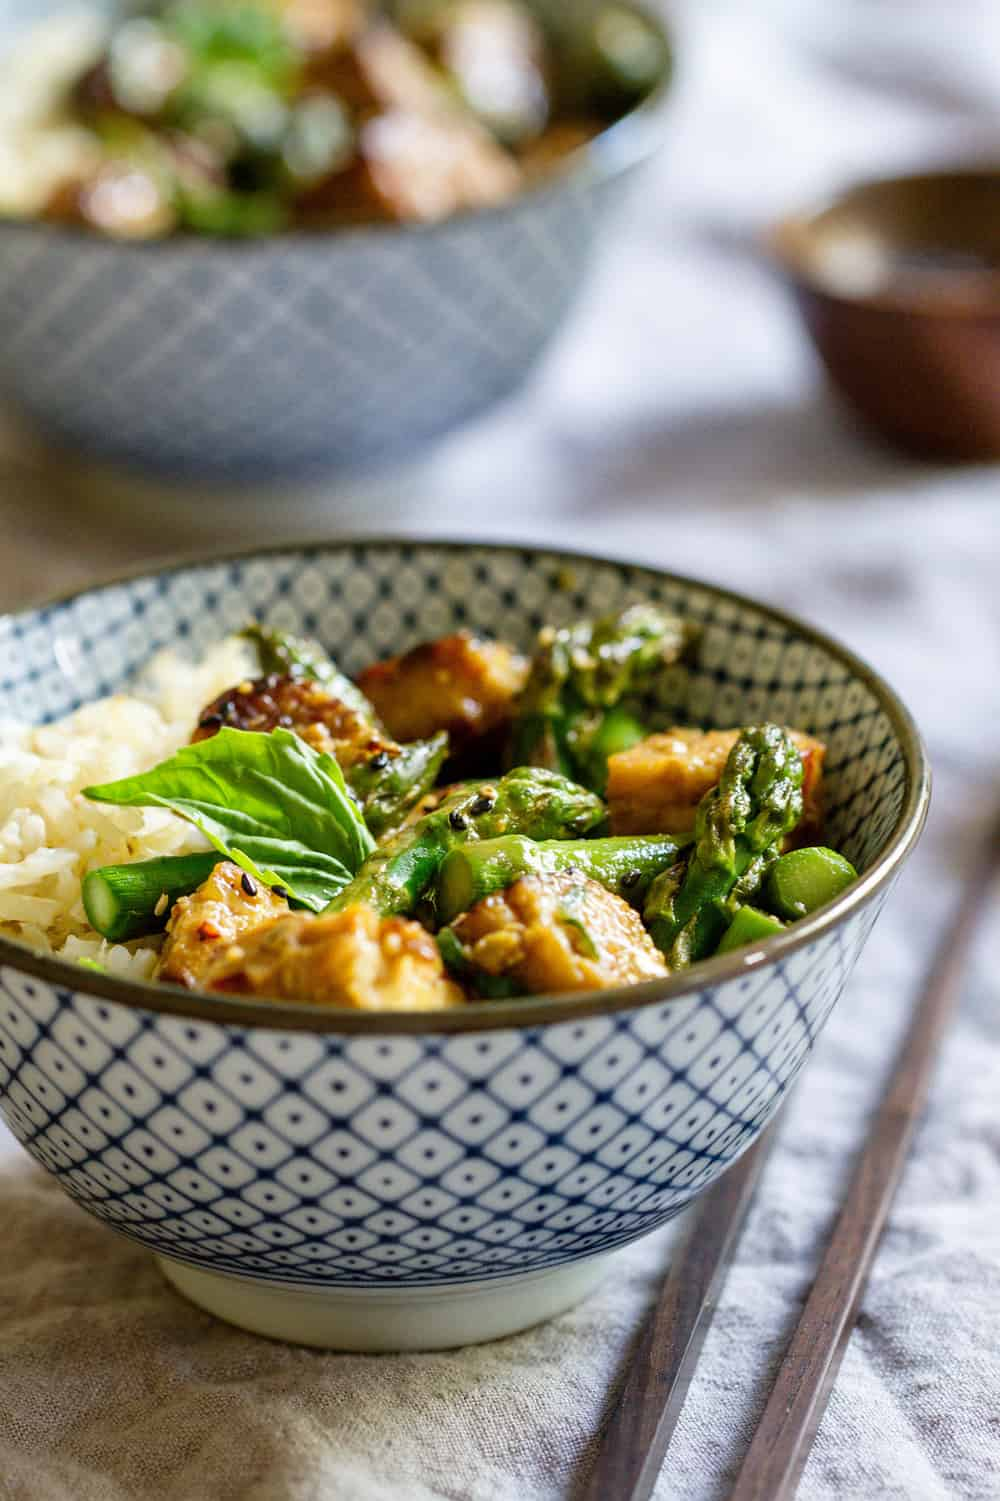 ROASTED ORANGE TEMPEH & ASPARAGUS IN A BOWL